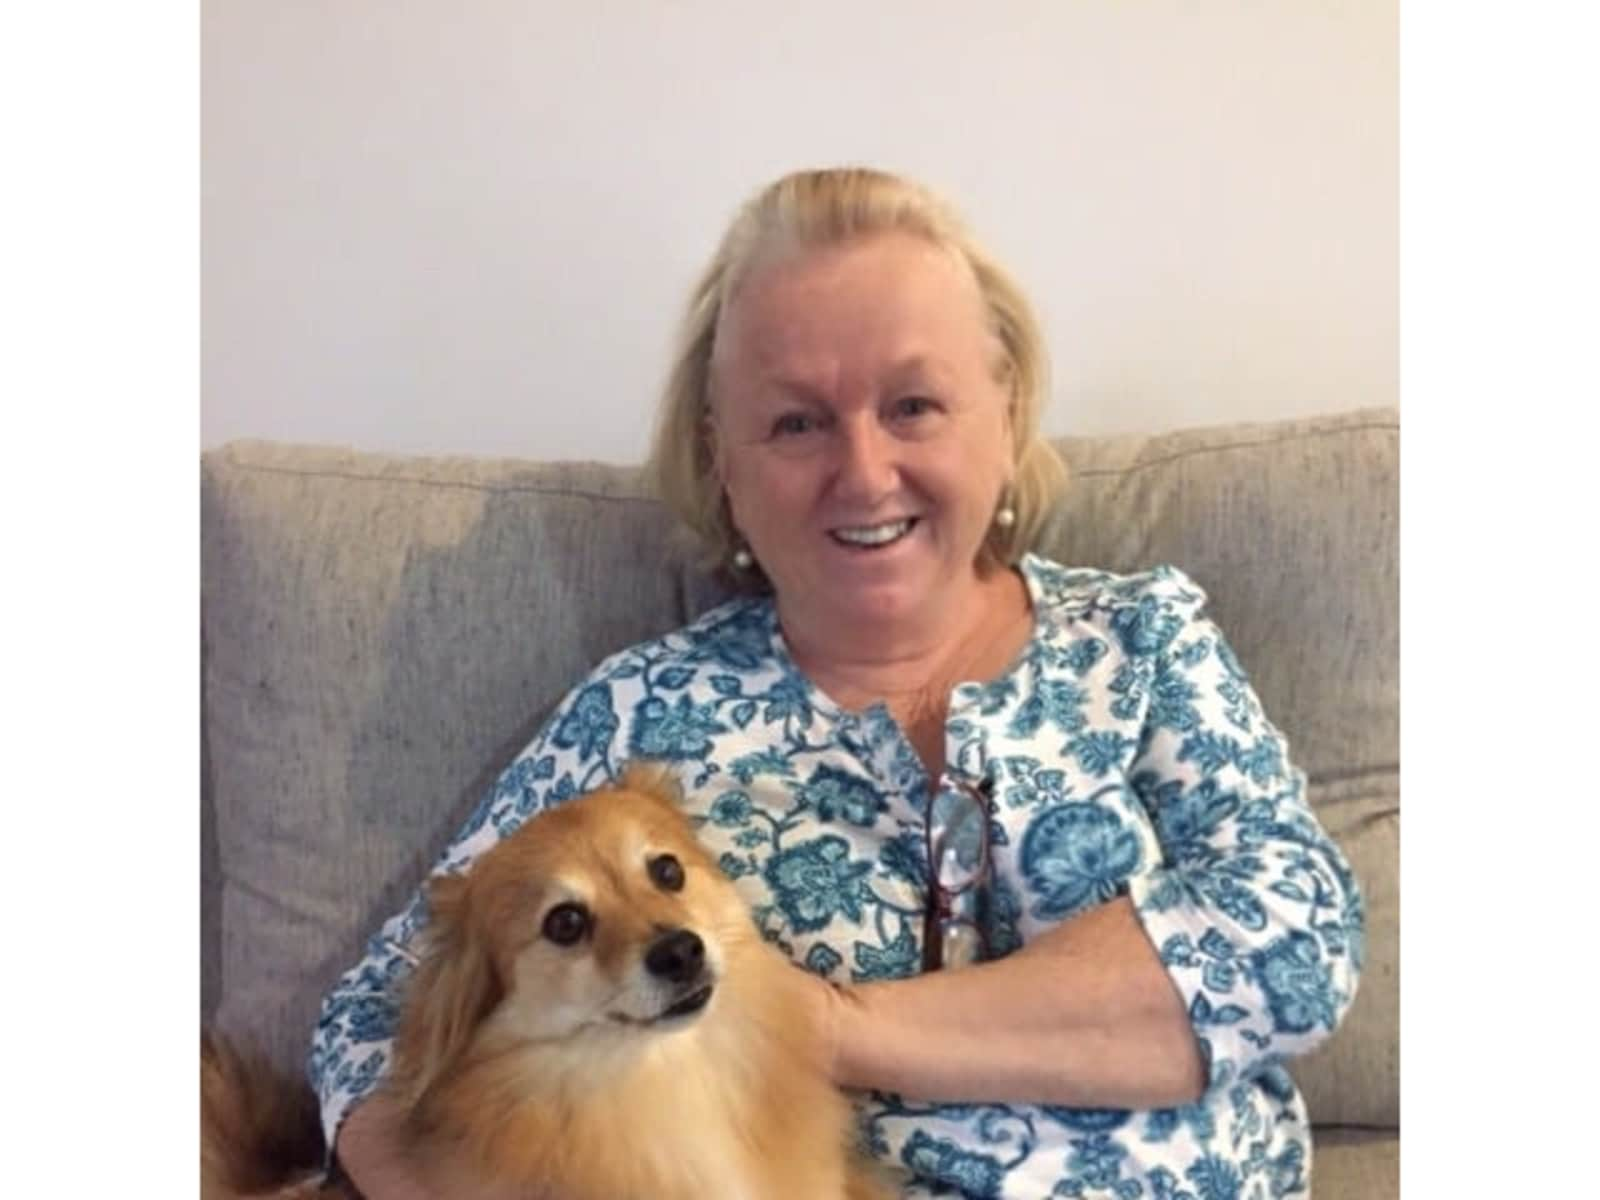 Gayle from Newcastle, New South Wales, Australia